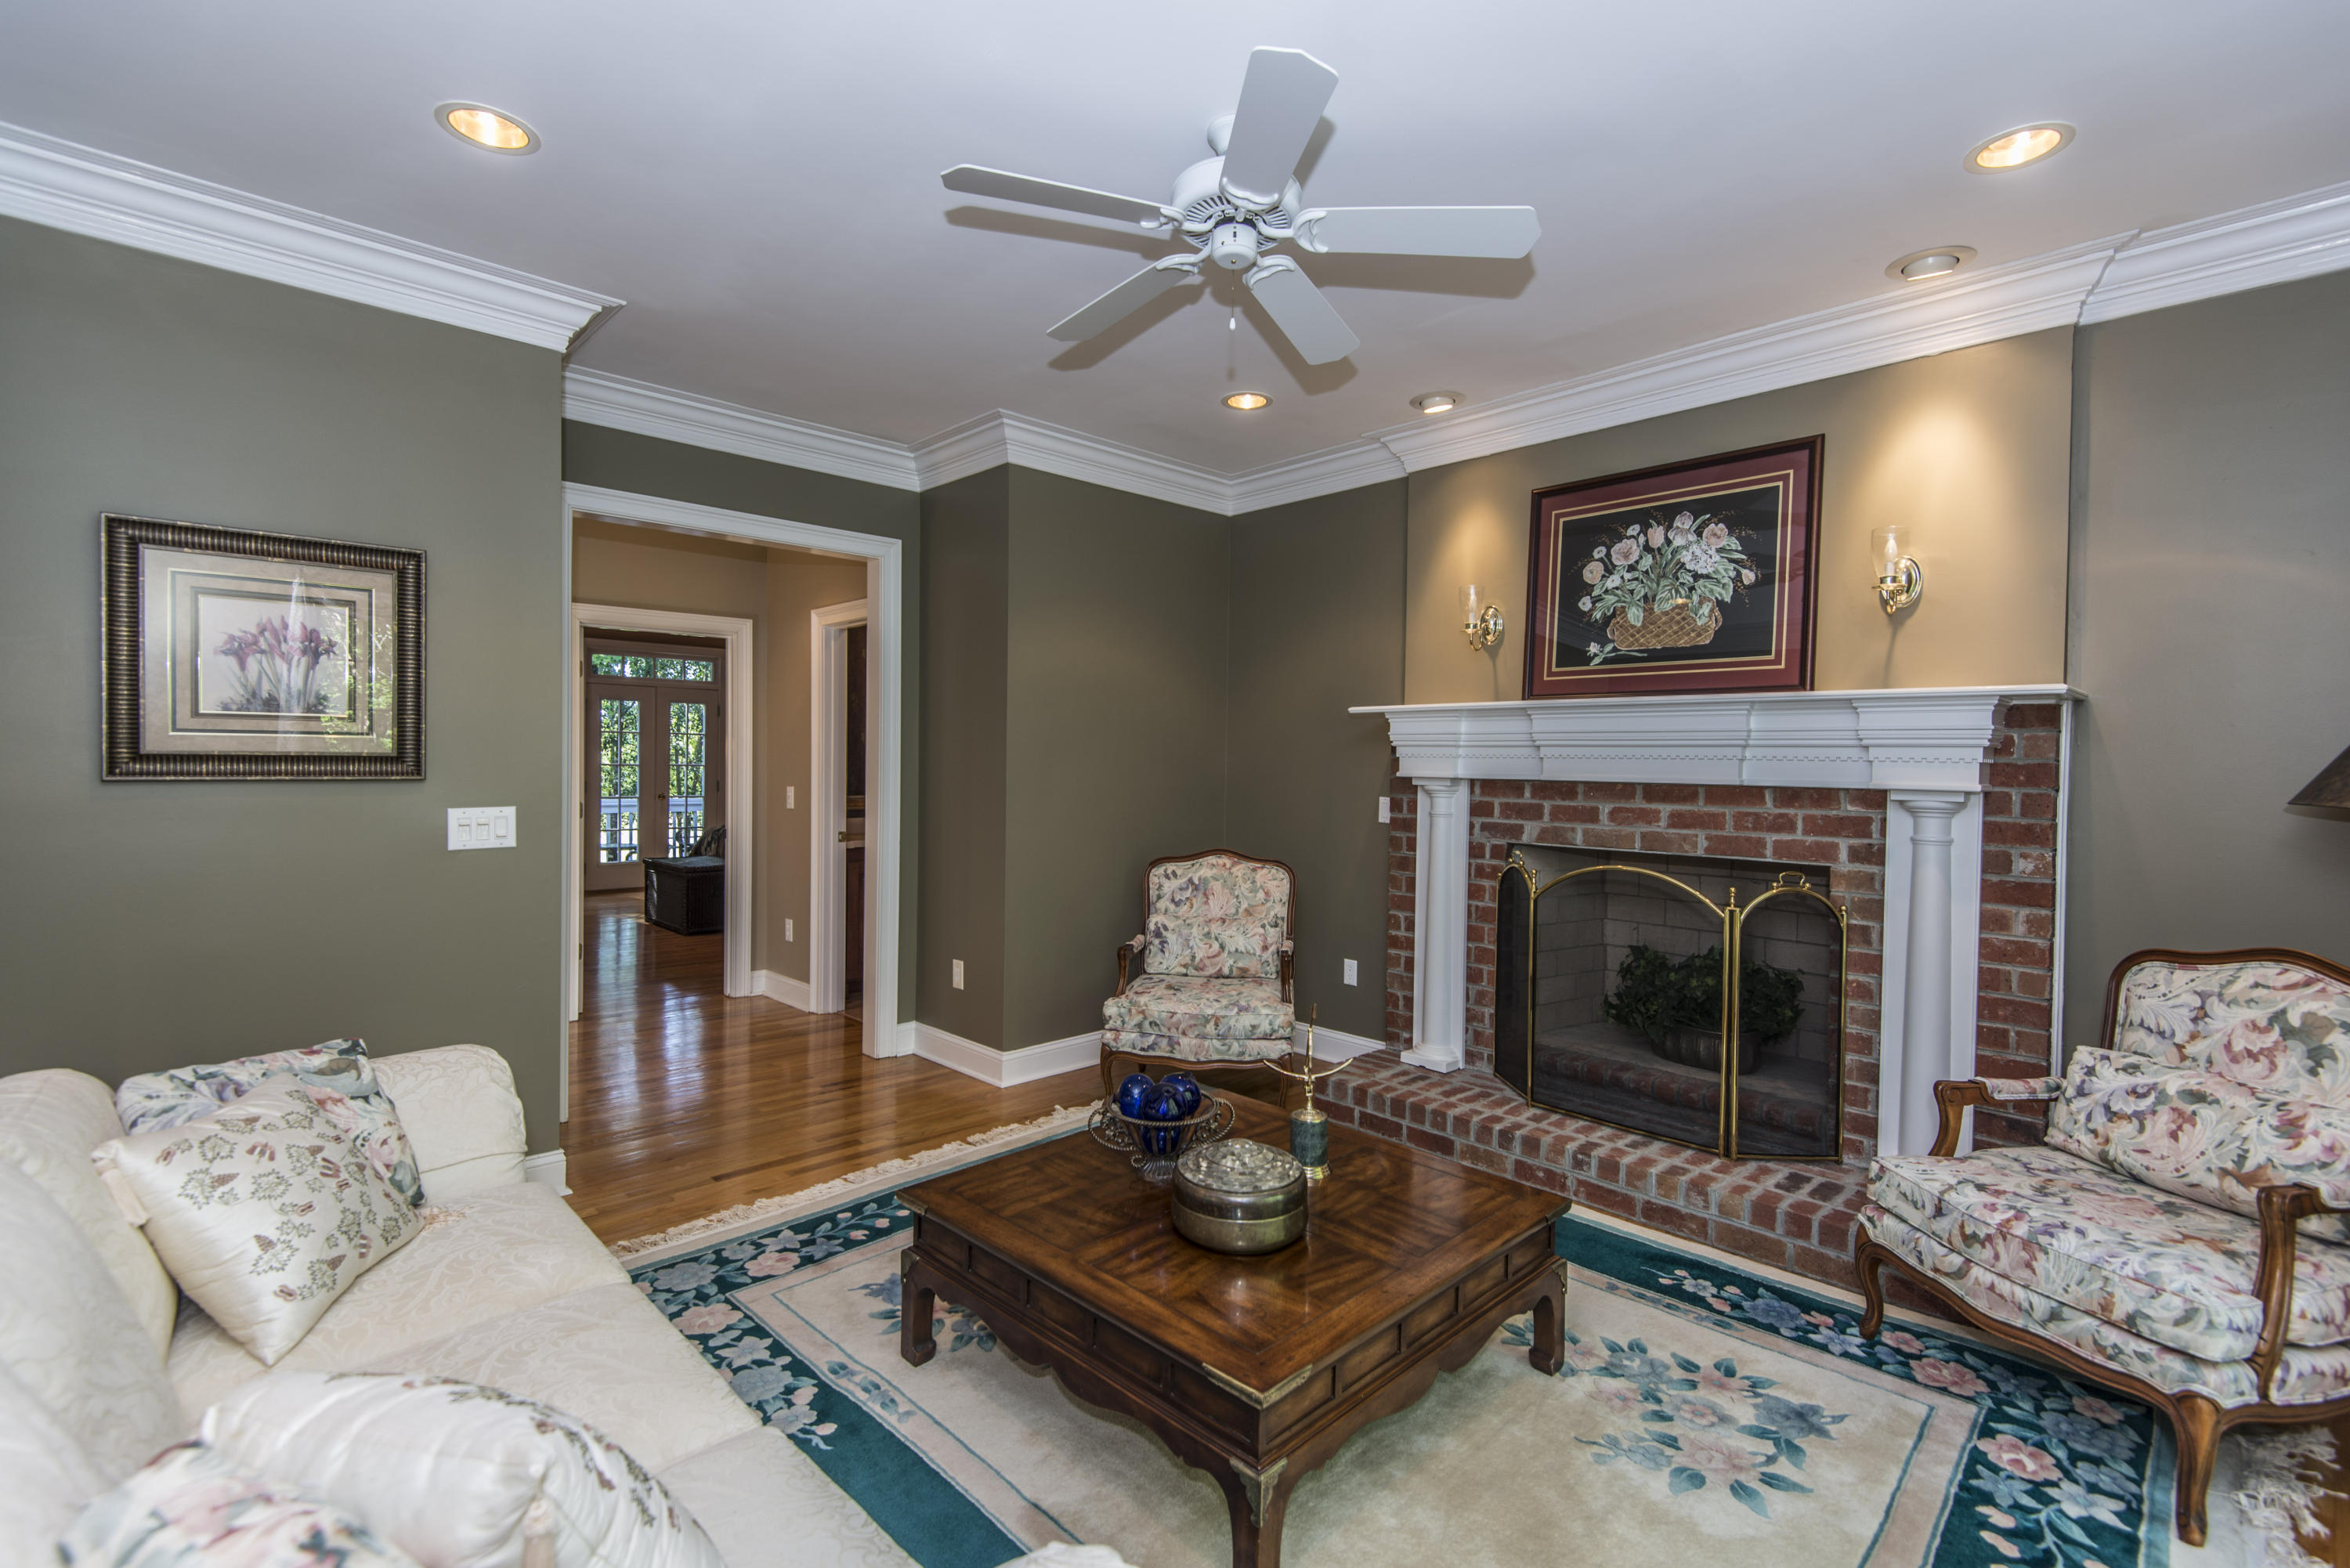 Home for sale 3111 Pignatelli Crescent, Dunes West, Mt. Pleasant, SC